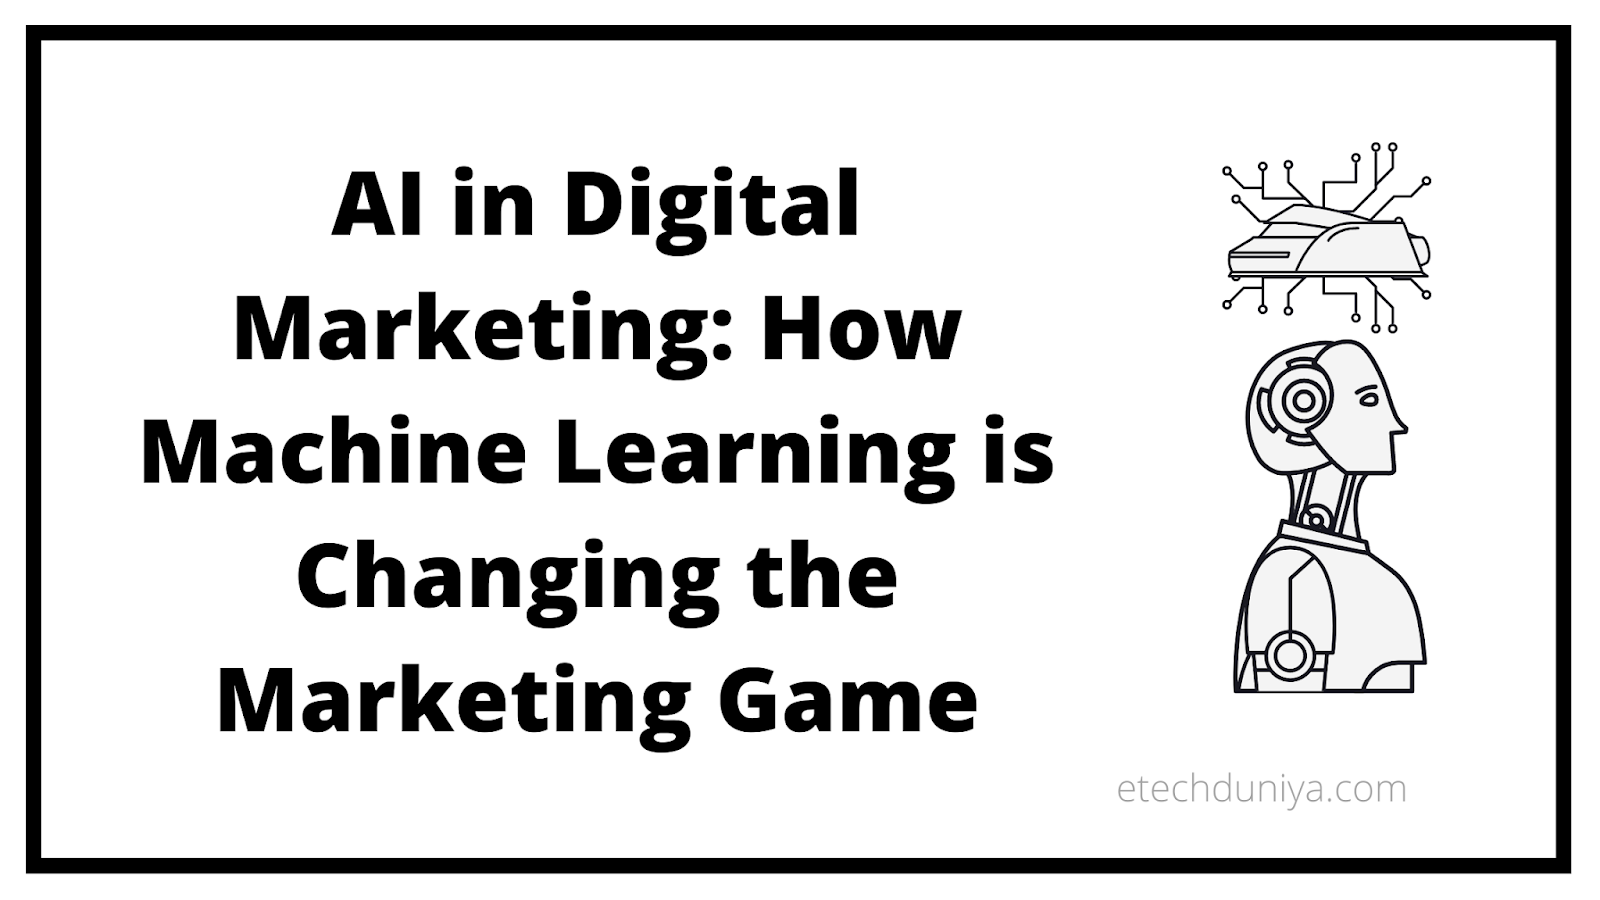 AI in Digital Marketing: How Machine Learning is Changing the Marketing Game